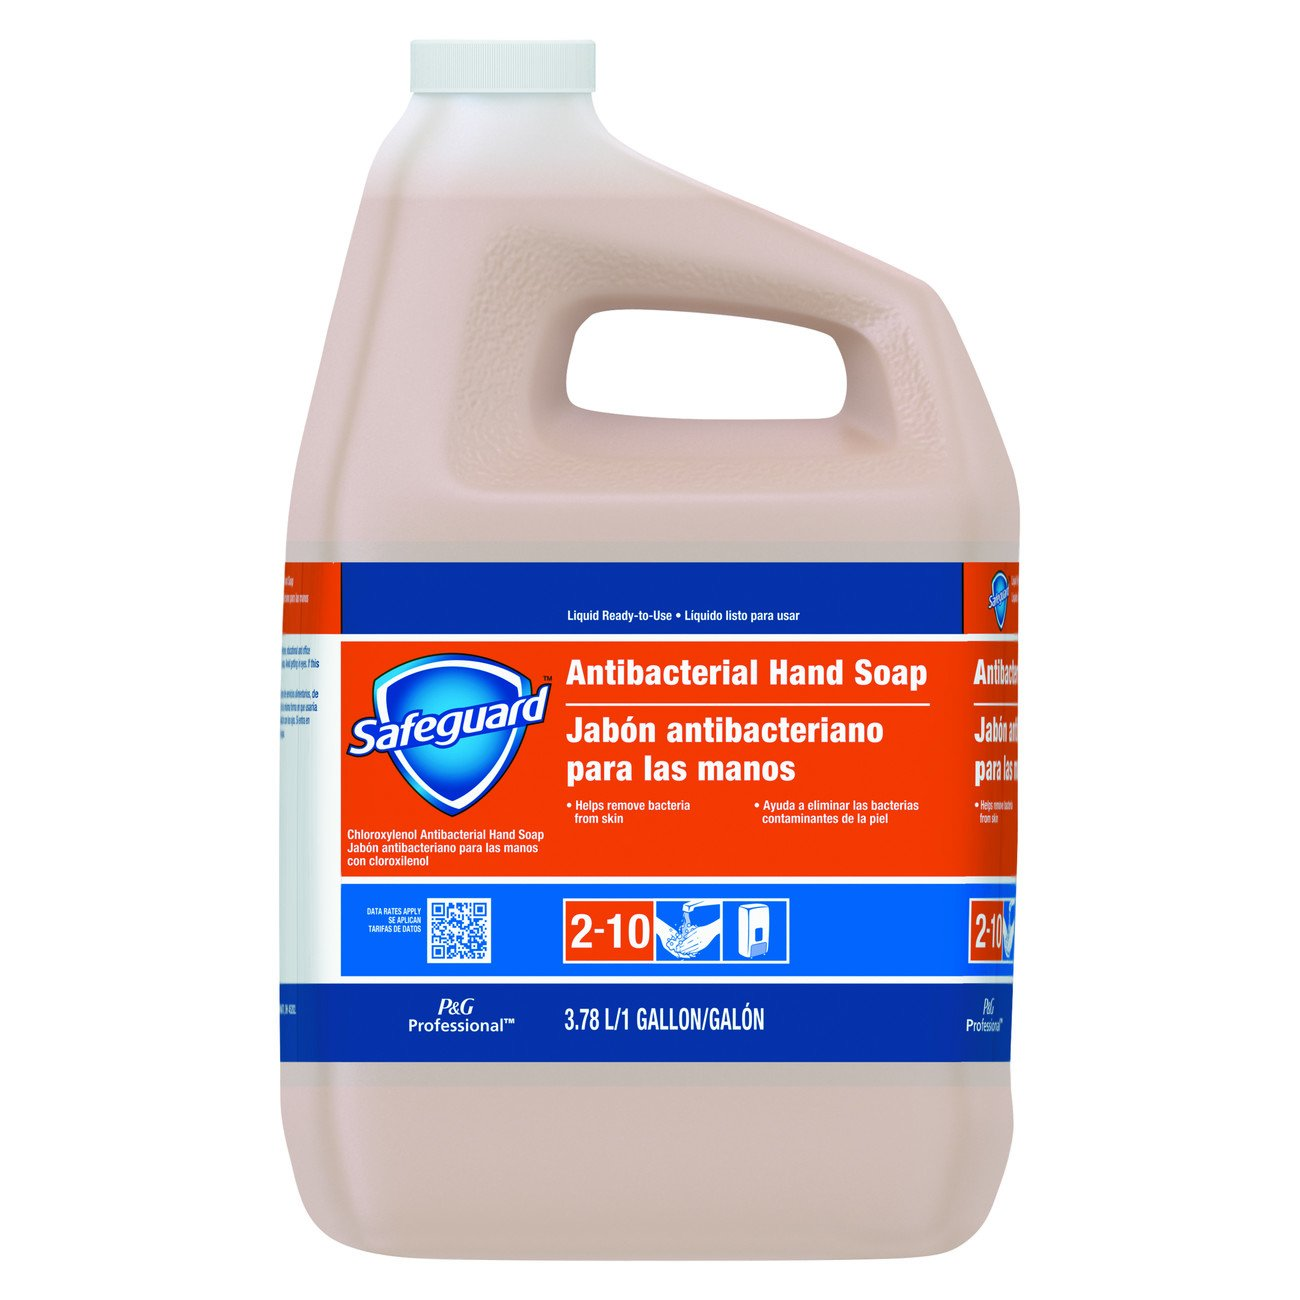 Safeguard 02699 Antibacterial Liquid Hand Soap, 1 Gallon (Case of 2)